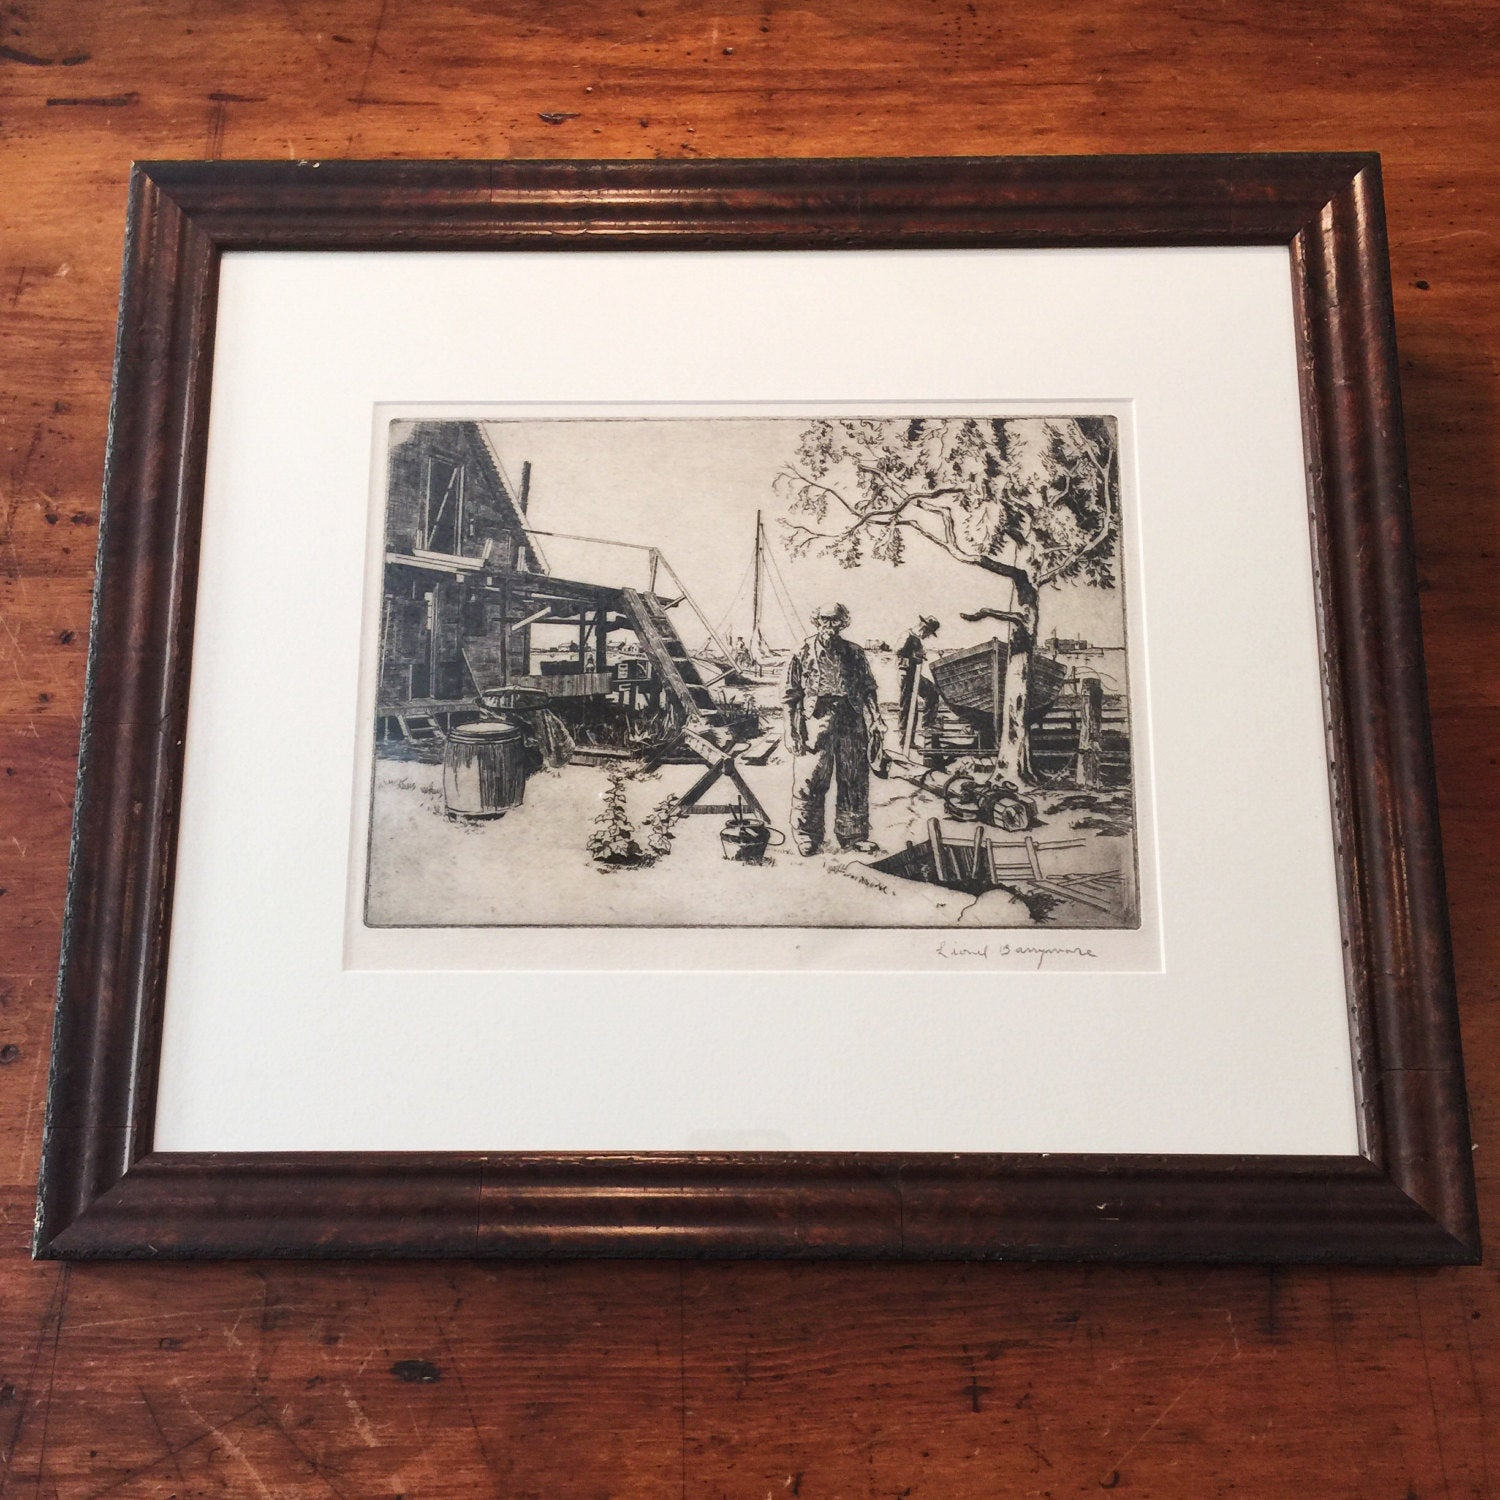 Lionel Barrymore Woodcut - Point Mugu - Signed in Pencil - Authentic - Vintage - Framed - Hollywood Art - Drew - Rare